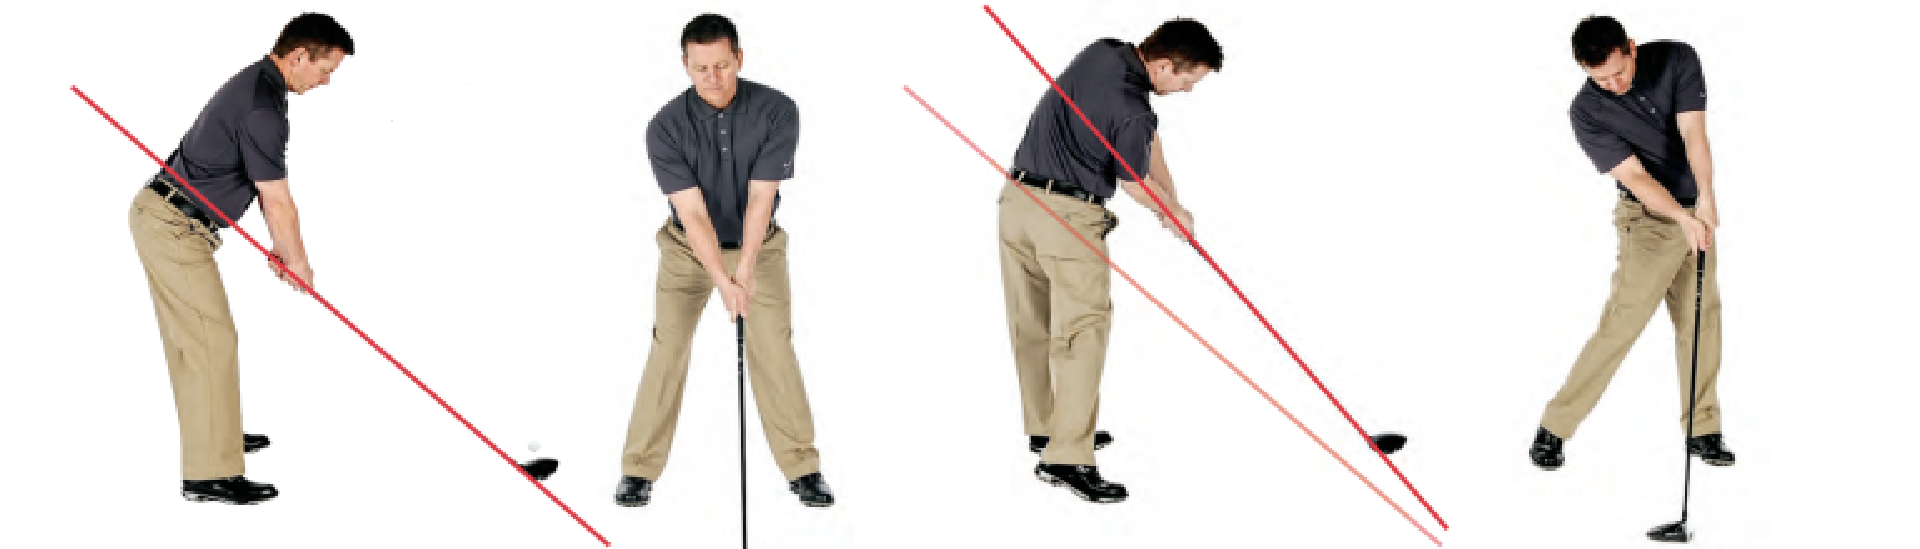 golf swing analysis online